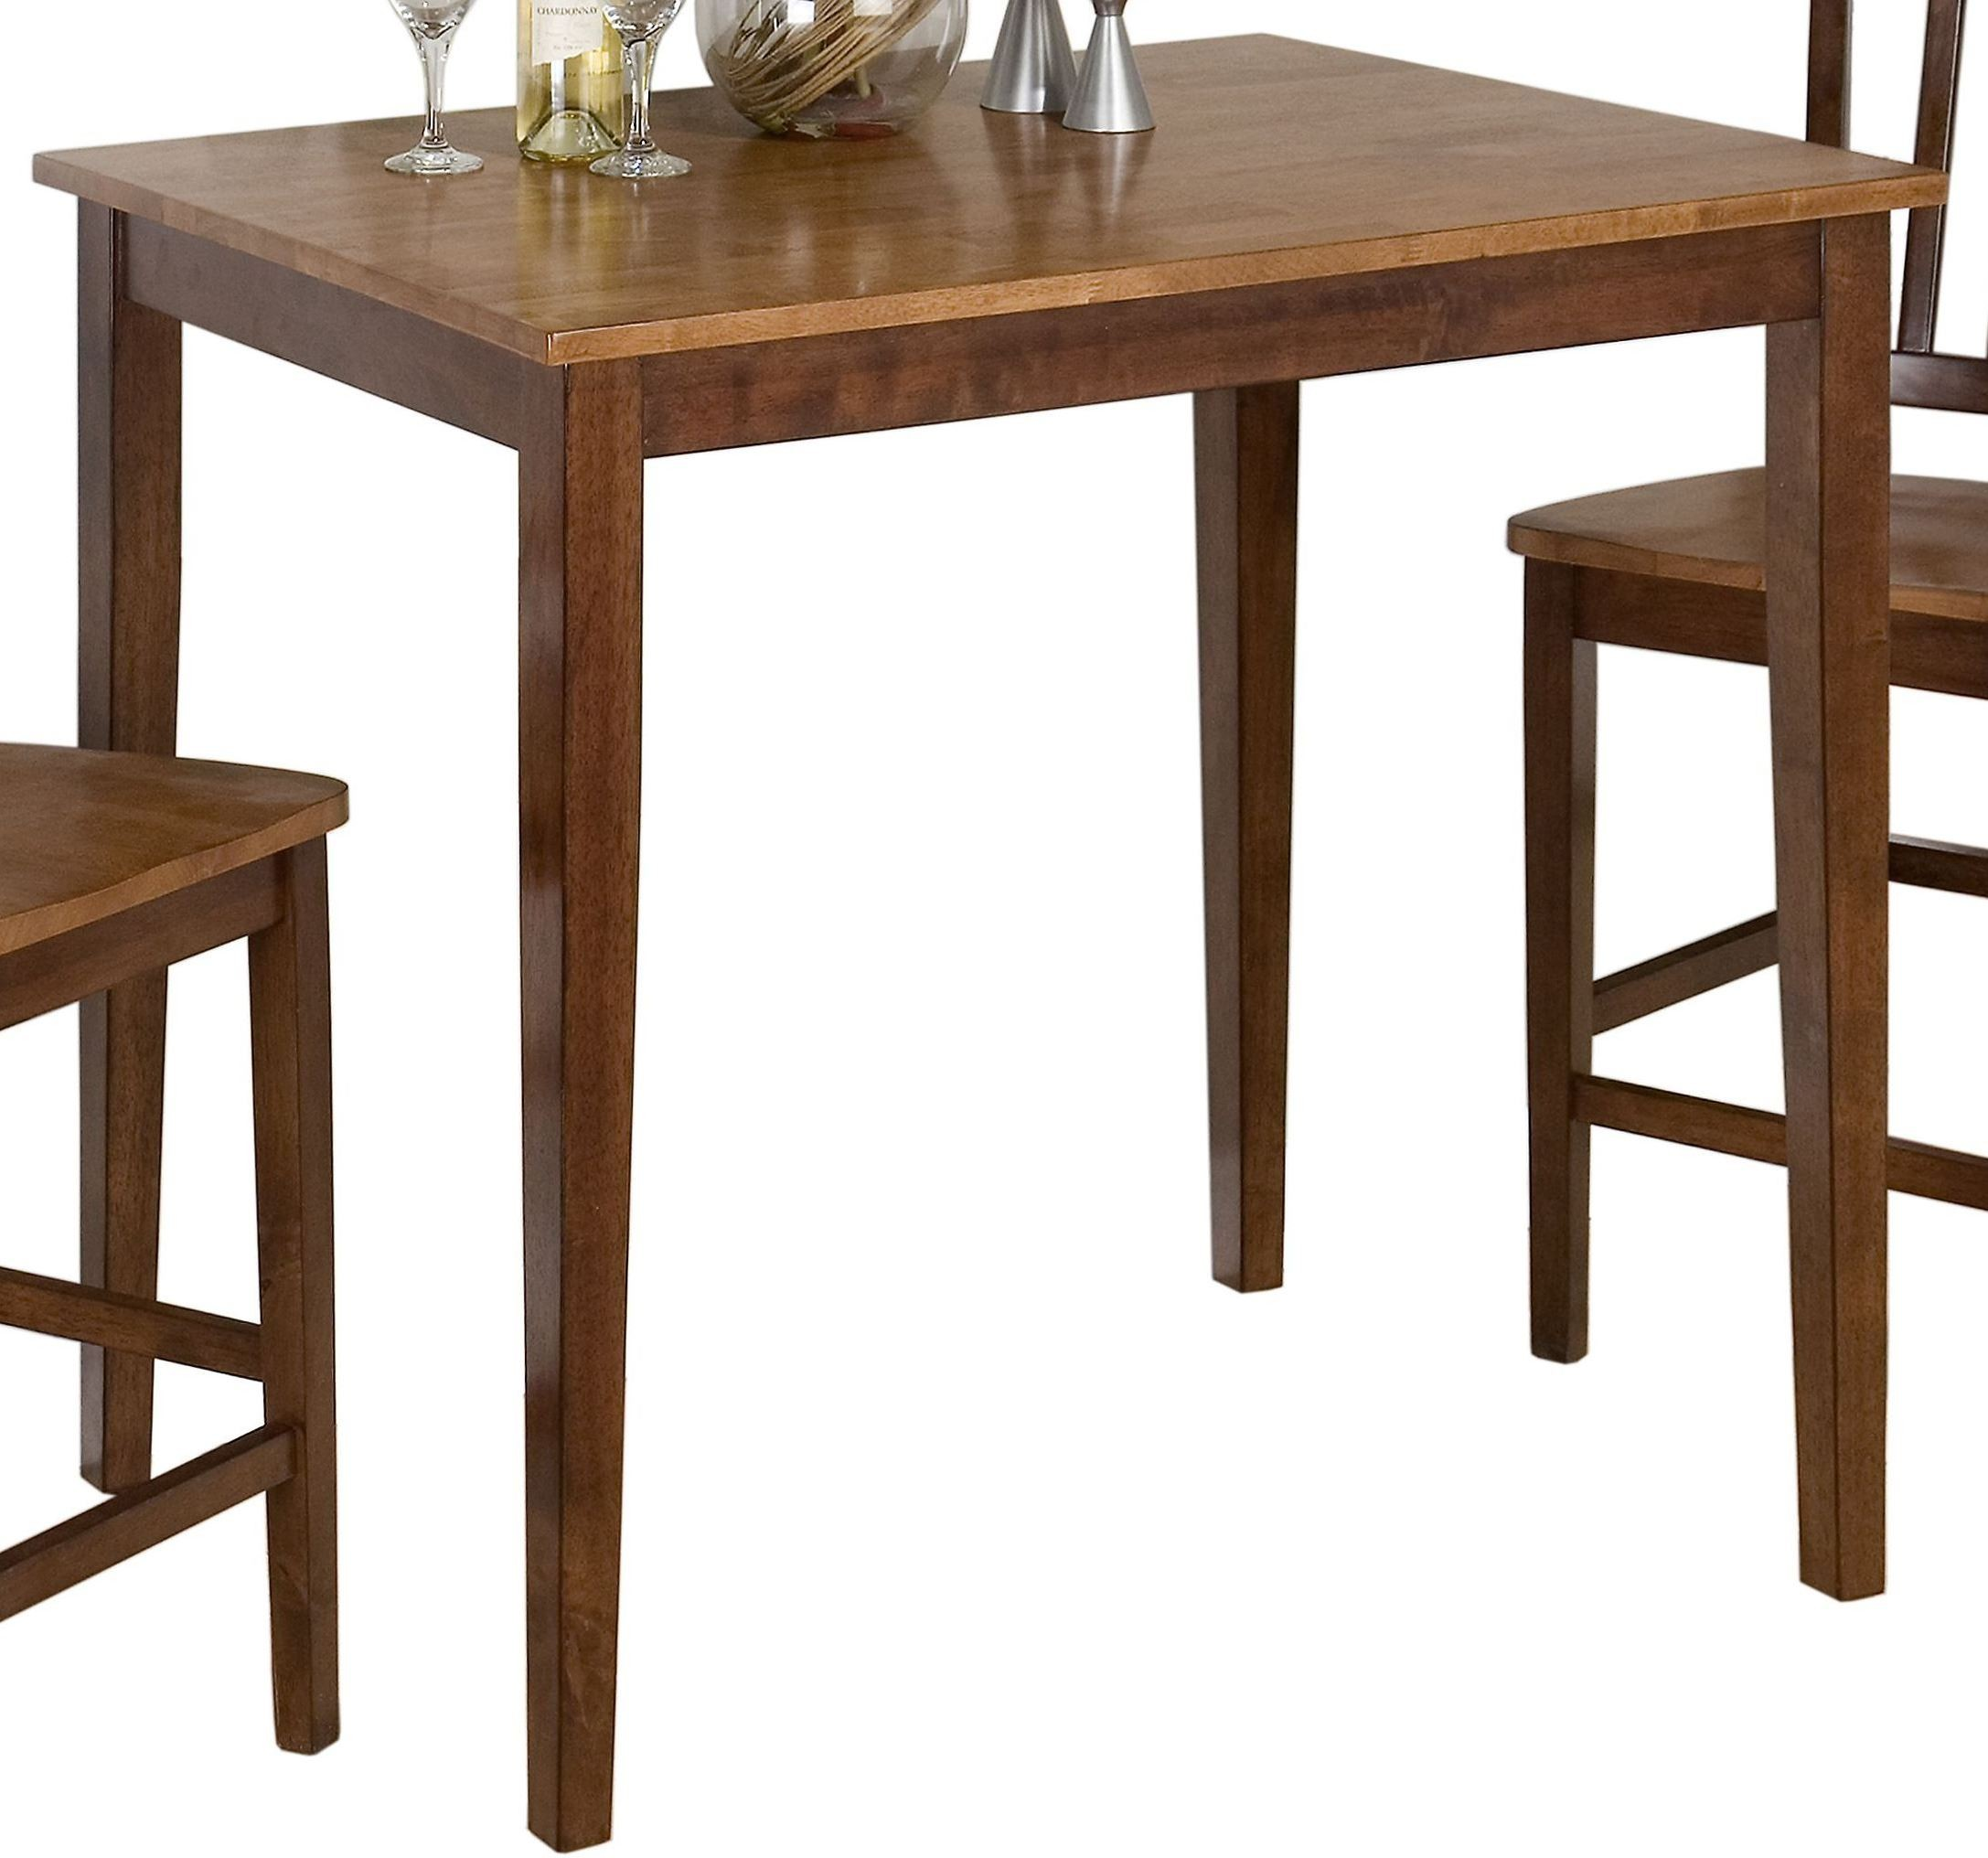 Kura espresso and canyon gold counter height dining table for Espresso dining table